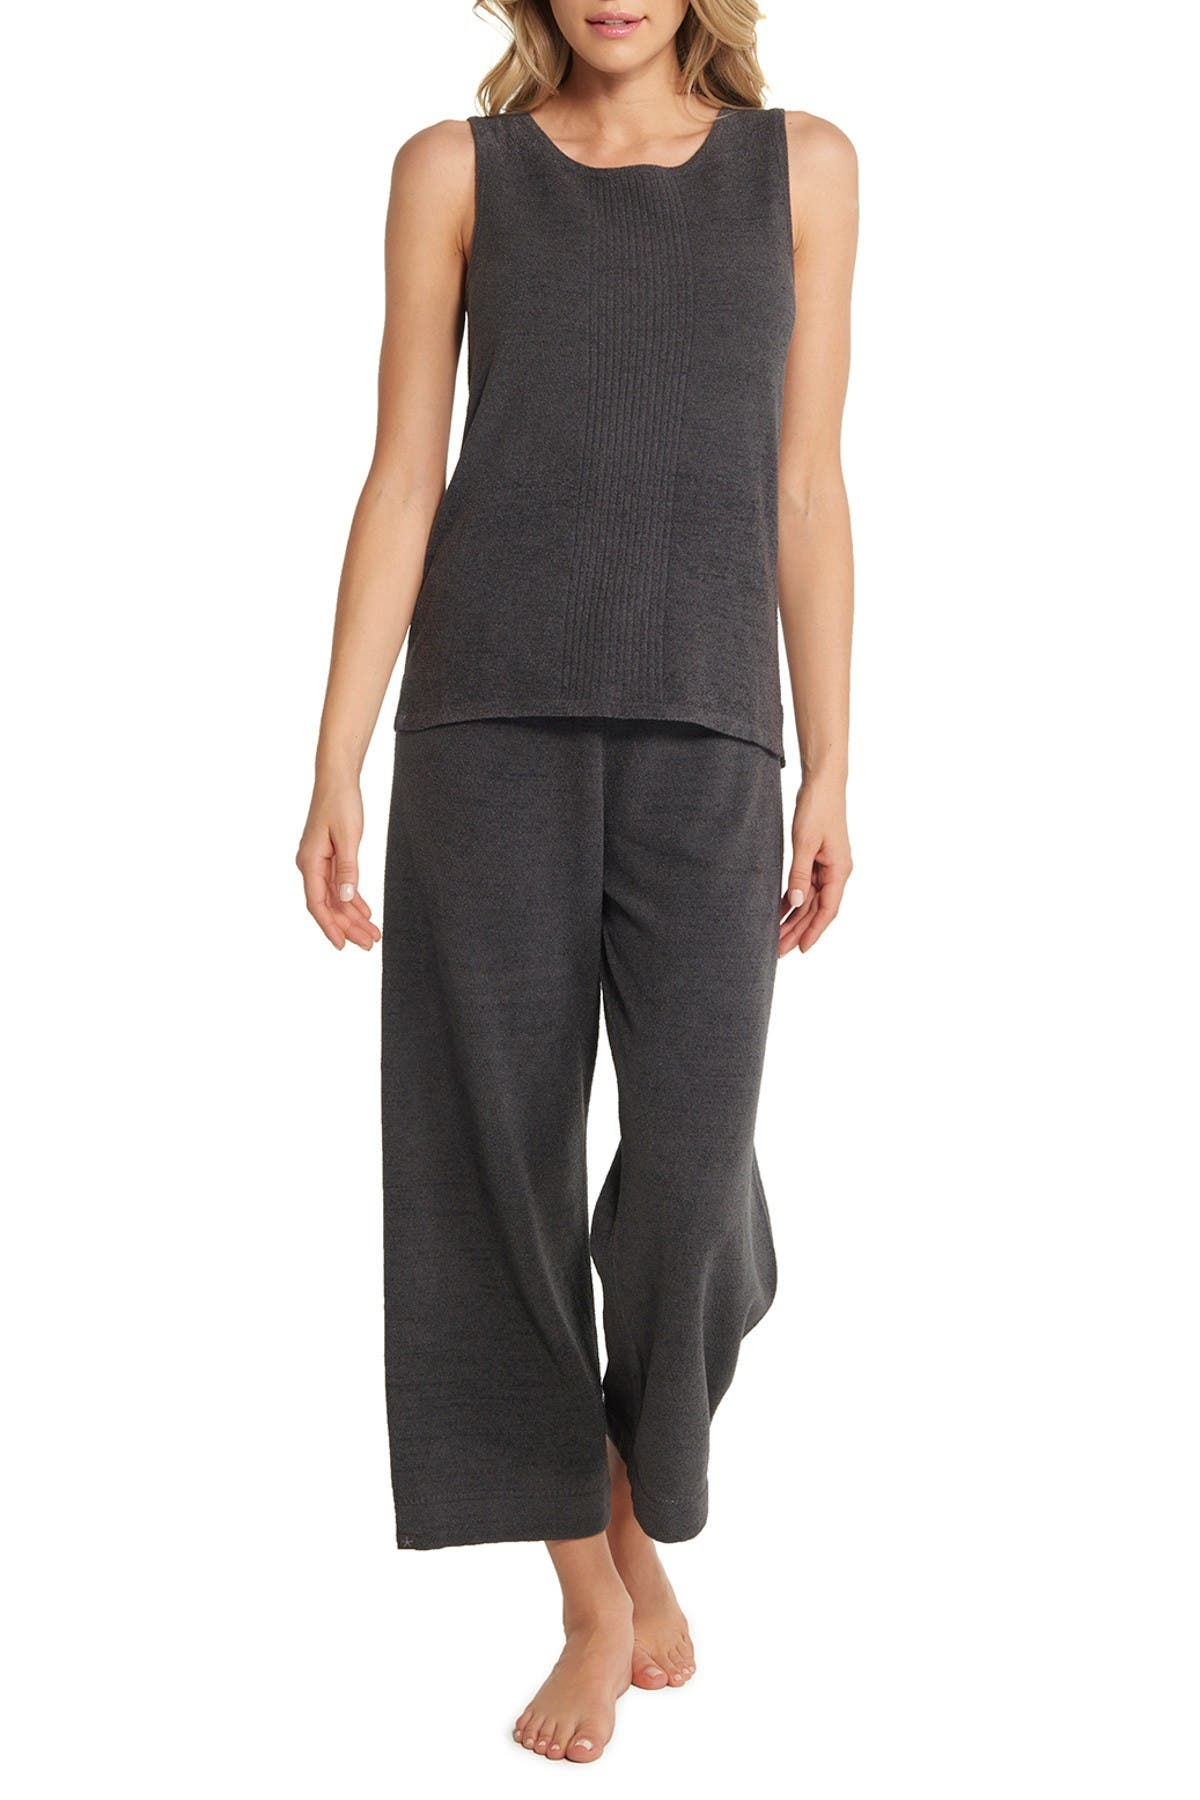 Image of Barefoot Dreams CozyChic Ultra Lite Sleeveless Boatneck Top